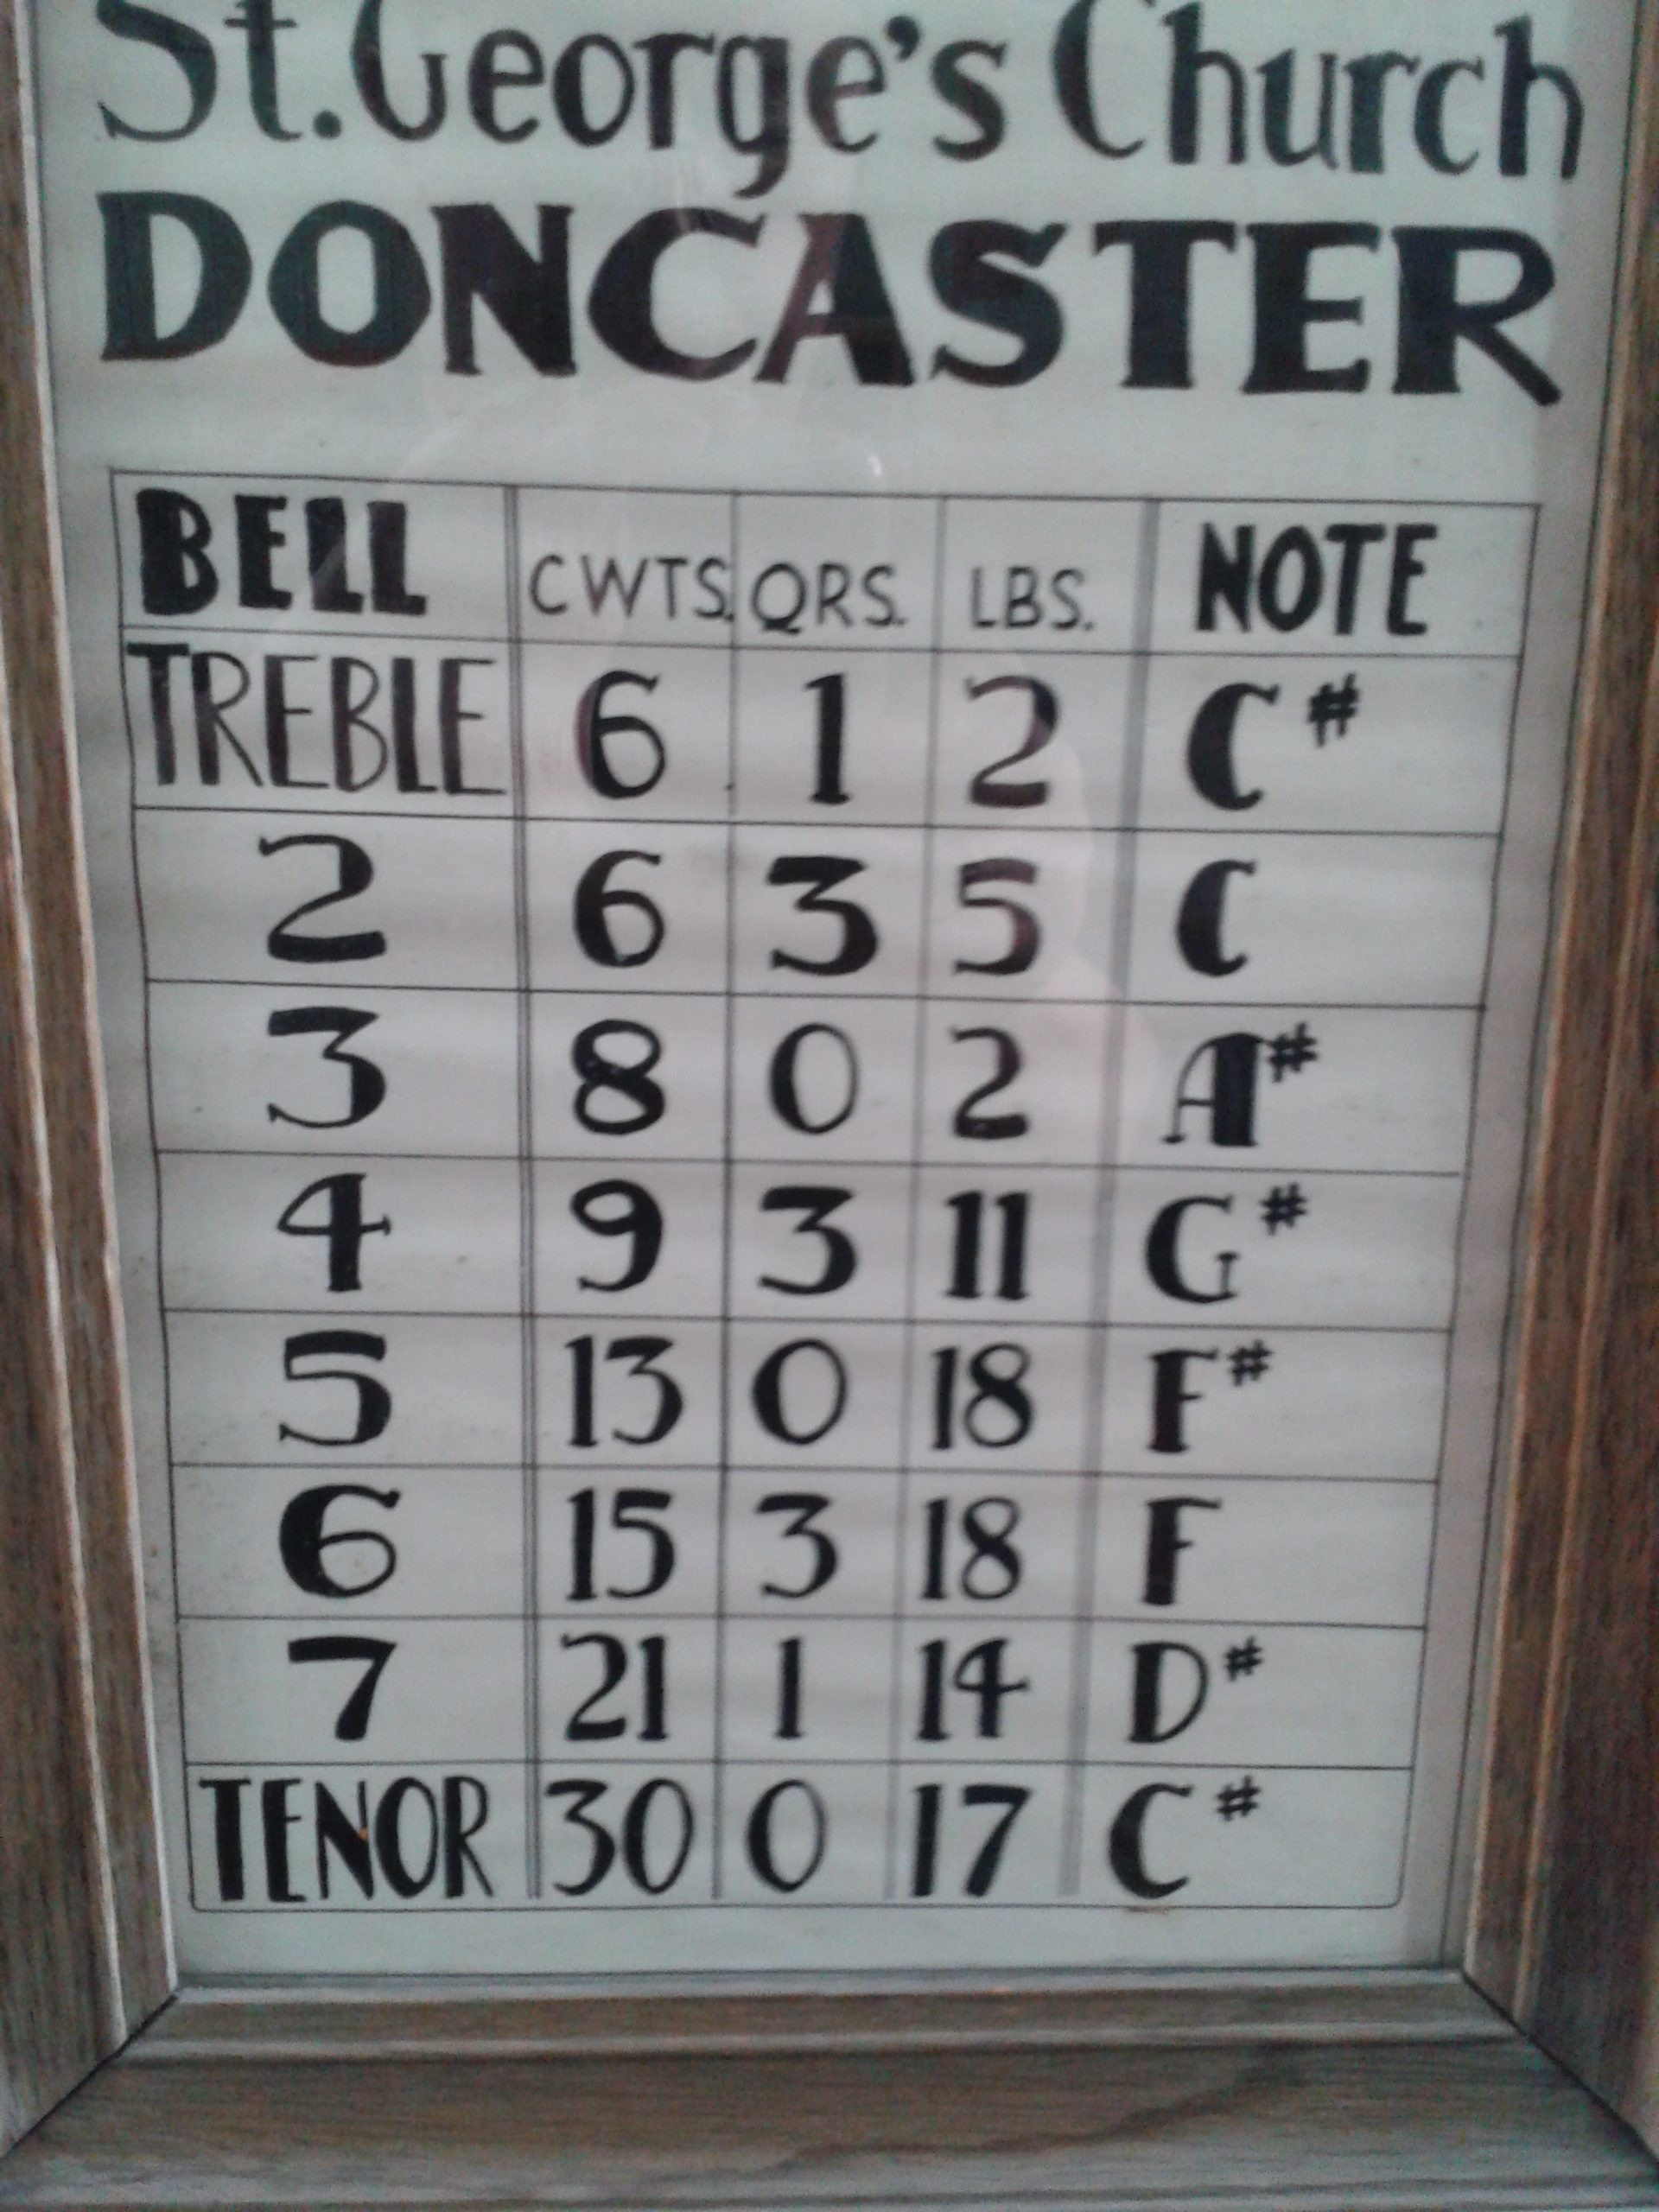 Doncaster Minster Bells listed by weight and note.